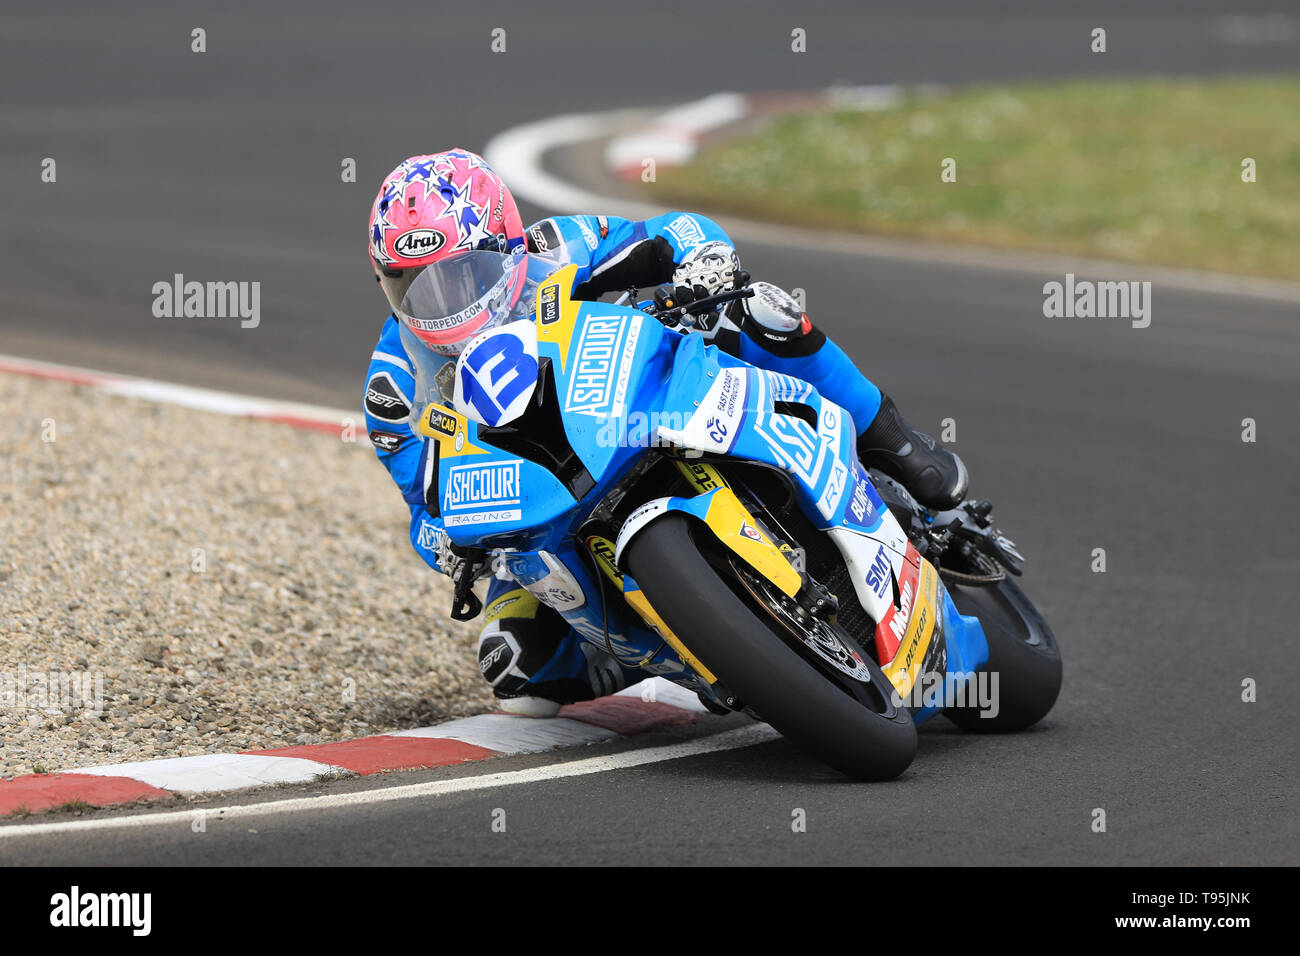 Portrush, Northern Ireland. 16th May, 2019. International North West 200 Motorcycle road racing, Thursday practice and evening racing; Lee Johnston on the Ashcourt Racing BMW during the SuperBike qualifying session Credit: Action Plus Sports/Alamy Live News - Stock Image